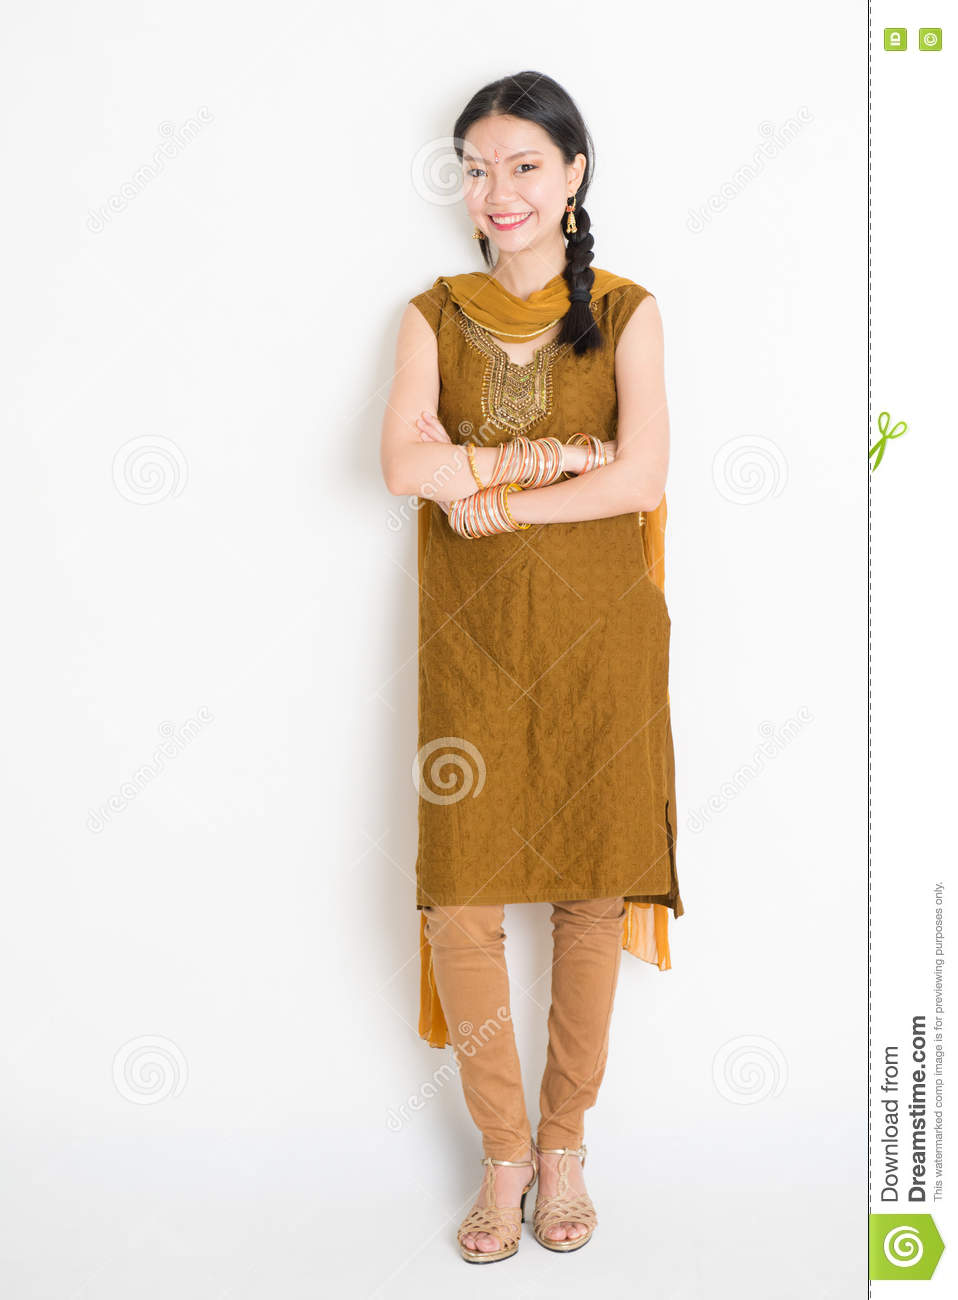 9419f7aa84 Portrait of young mixed race Indian Chinese female in traditional punjabi  dress smiling, full length standing on plain white background.